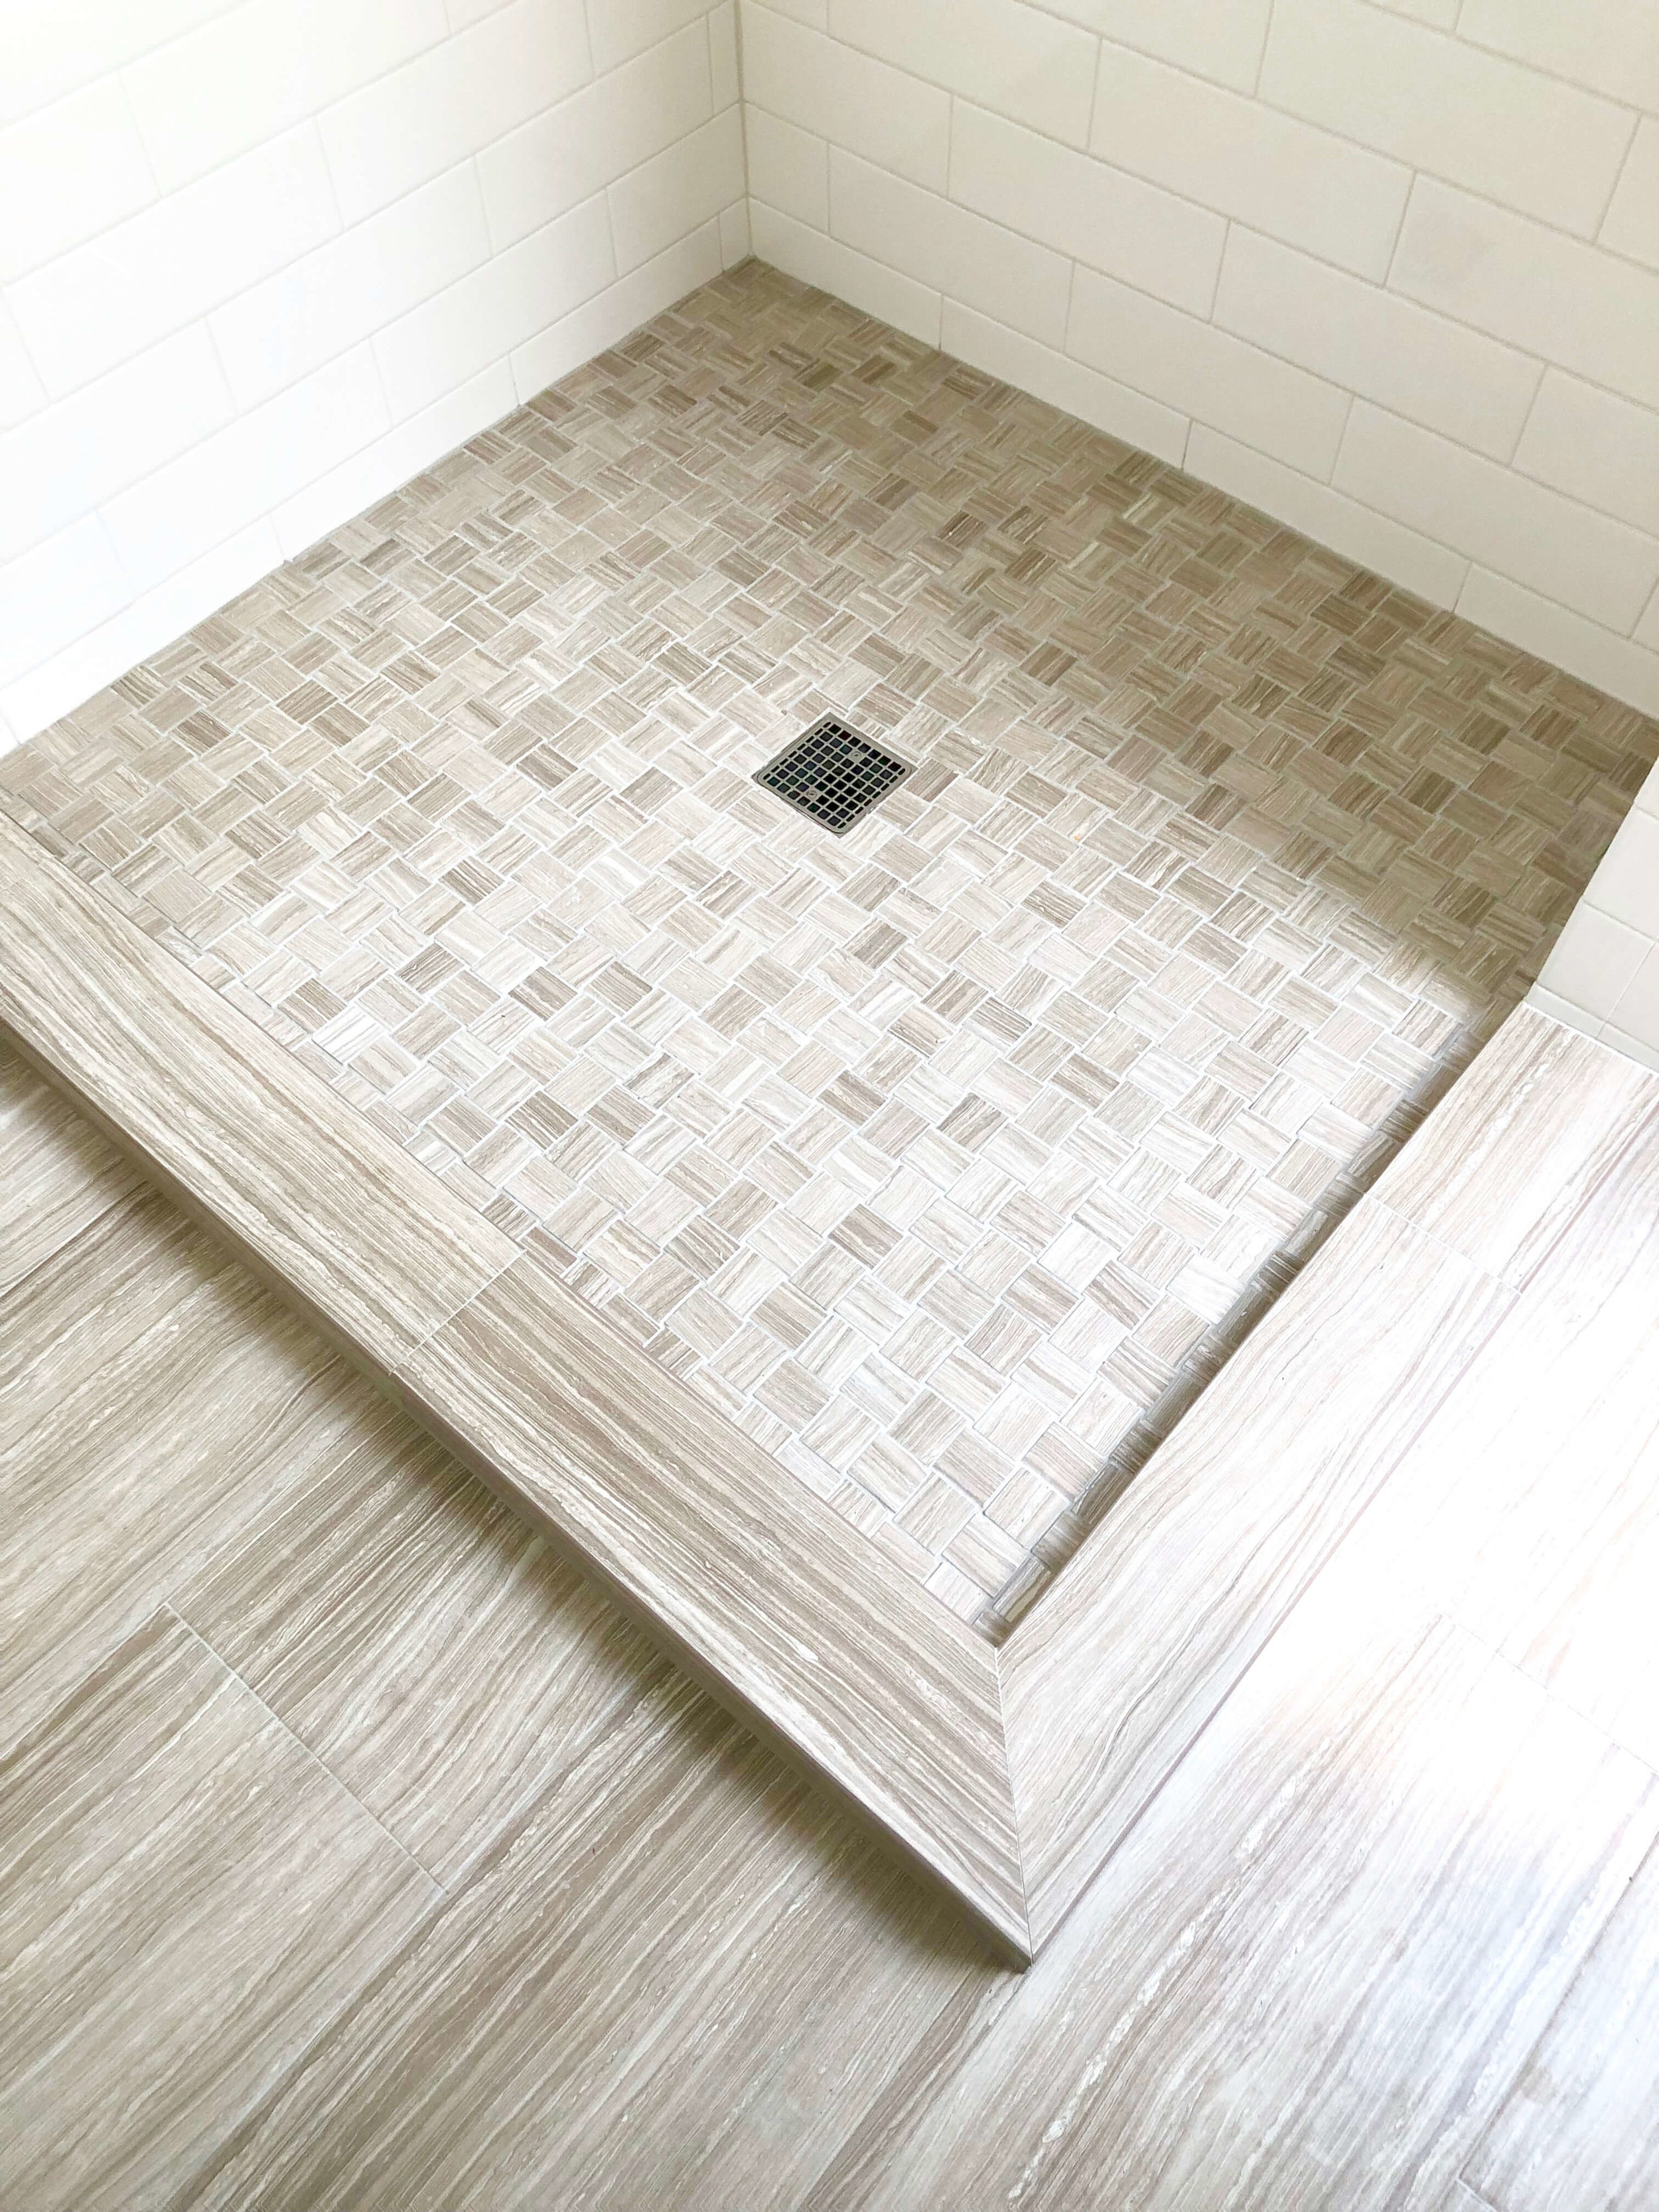 Shower curb done in tile to match the floor expands the look of this small bathroom. A frameless glass enclosure on top will help reinforce this open feeling. #showerstall #bathroomdesign